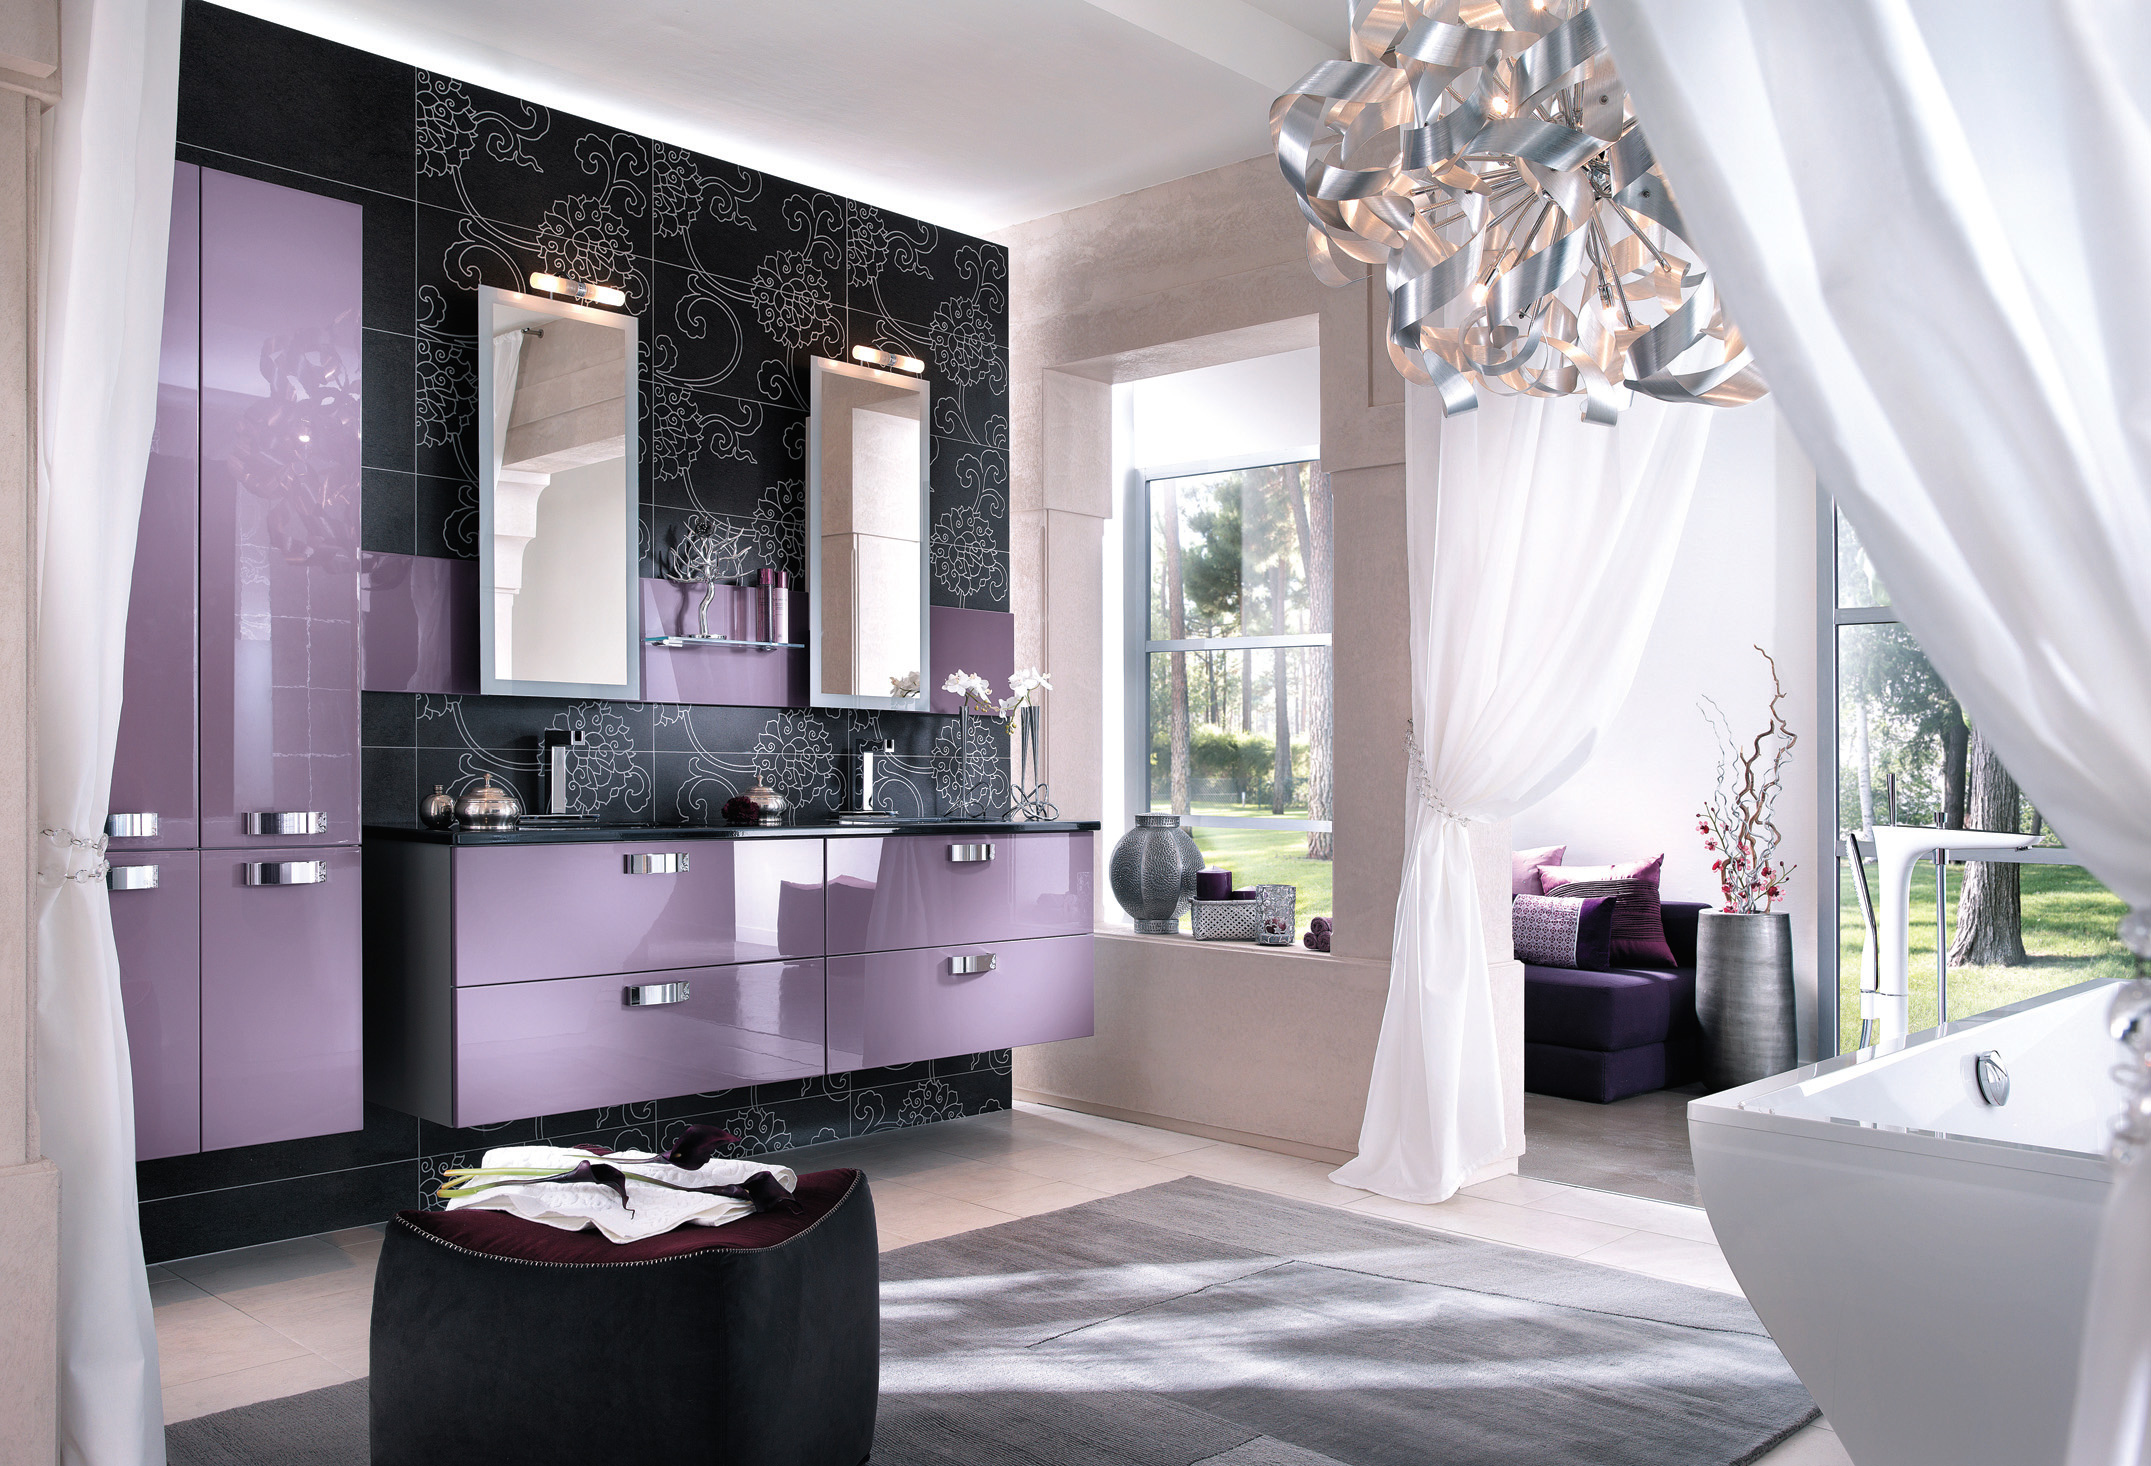 Best salle de bain chic contemporary for Salle bain chic